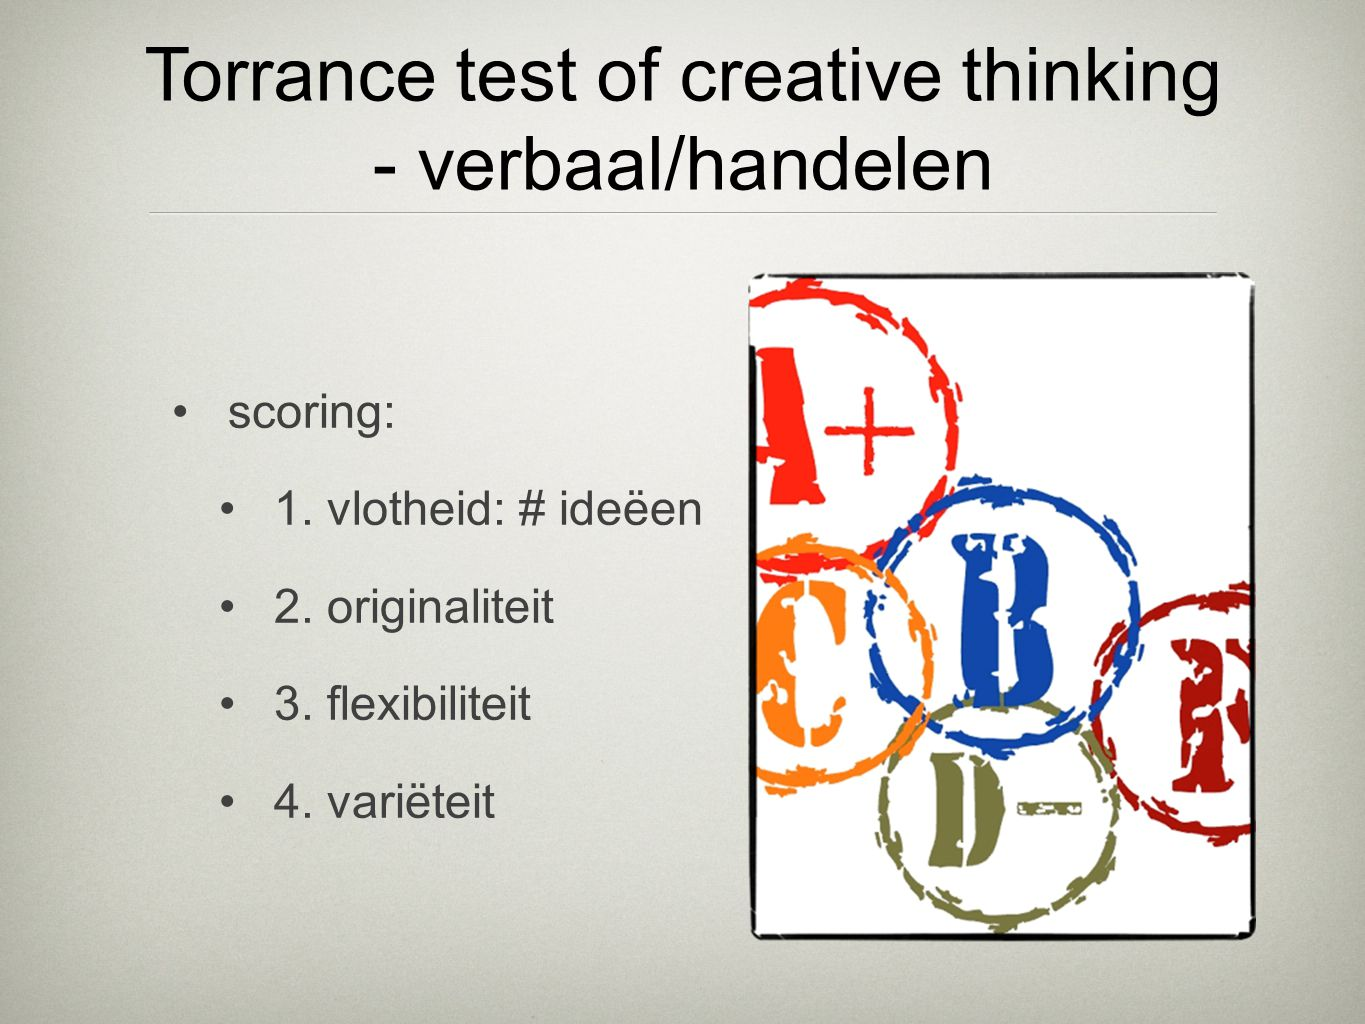 Torrance test of creative thinking - verbaal/handelen